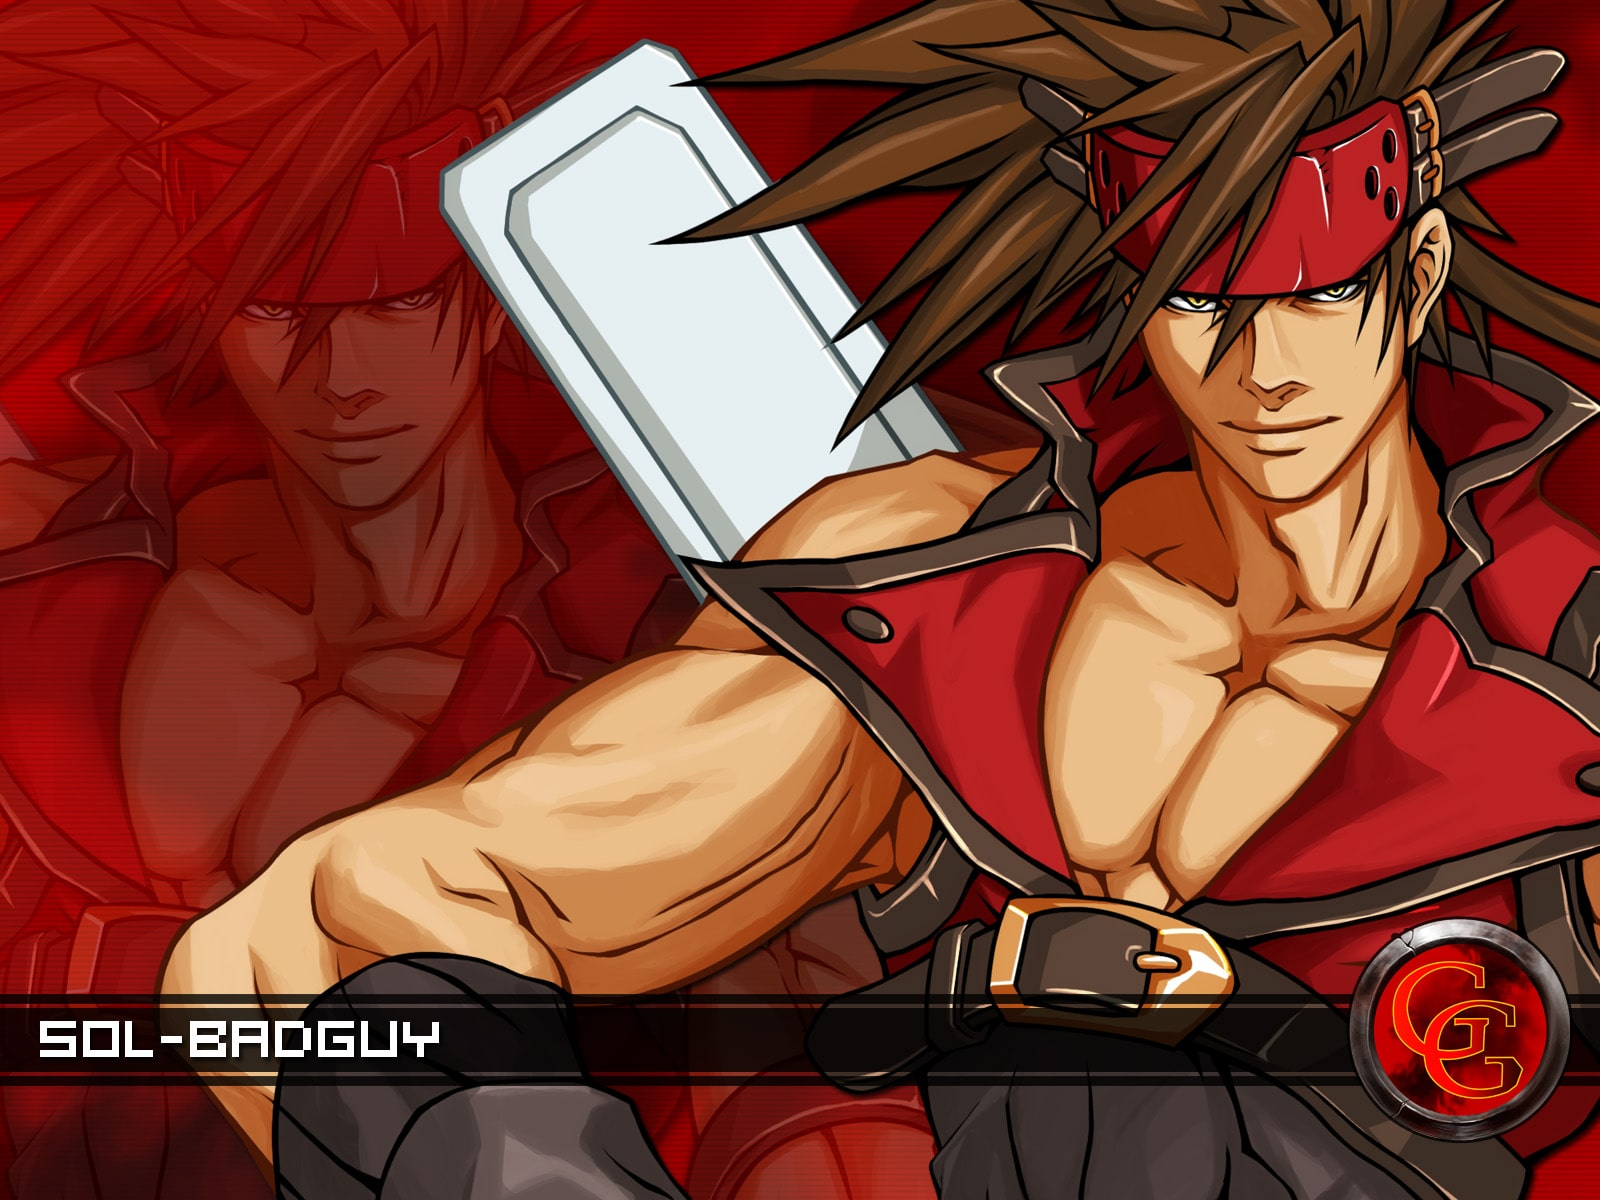 Guilty Gear: Sol Badguy widescreen wallpapers